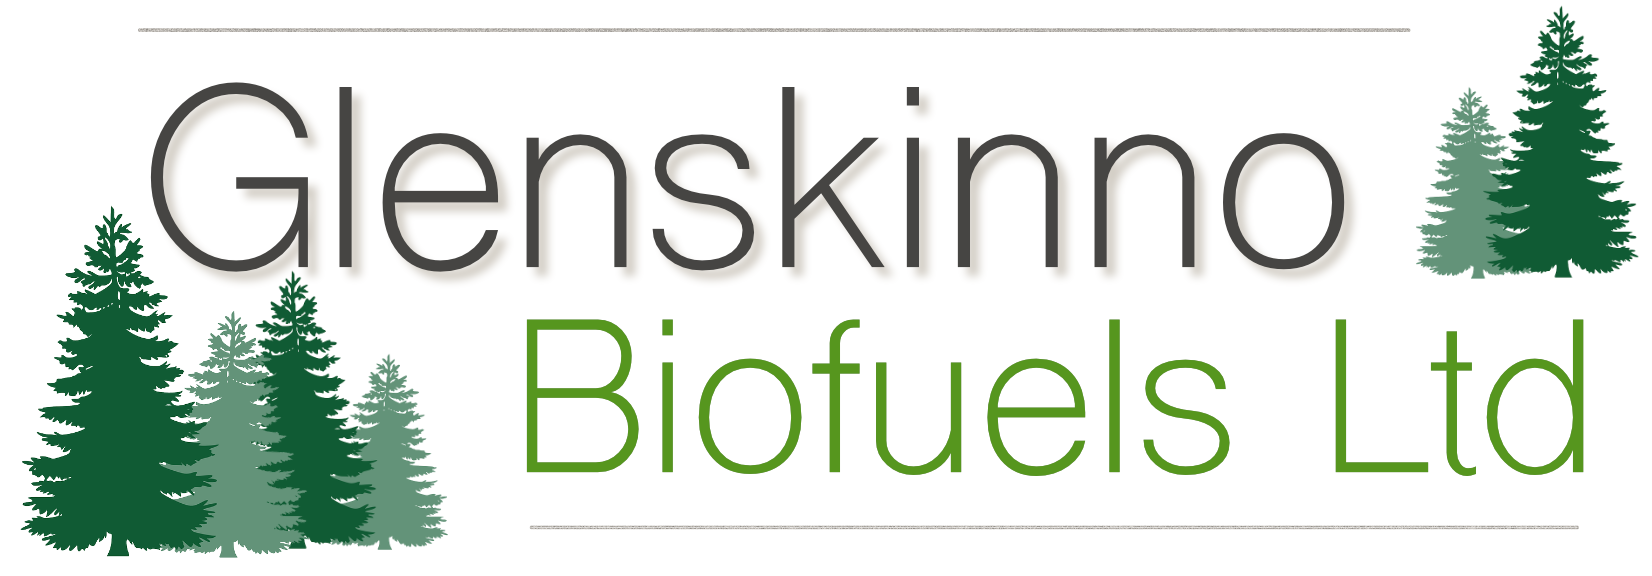 Glenslinno logo PNG (with background).png